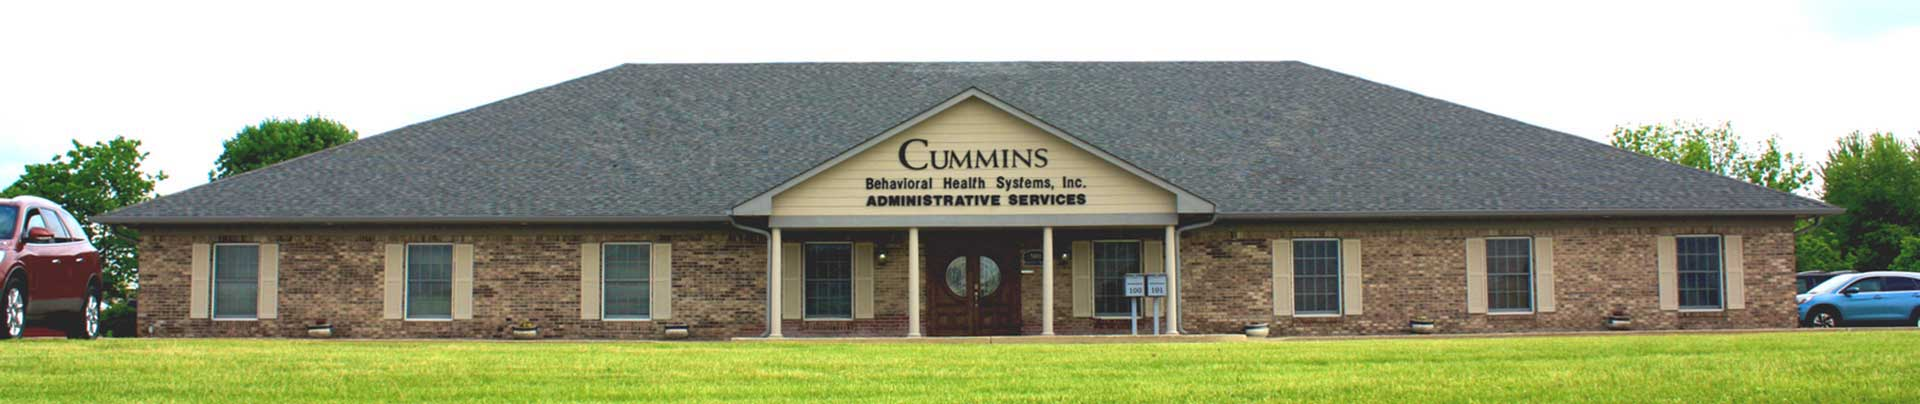 cummins-location